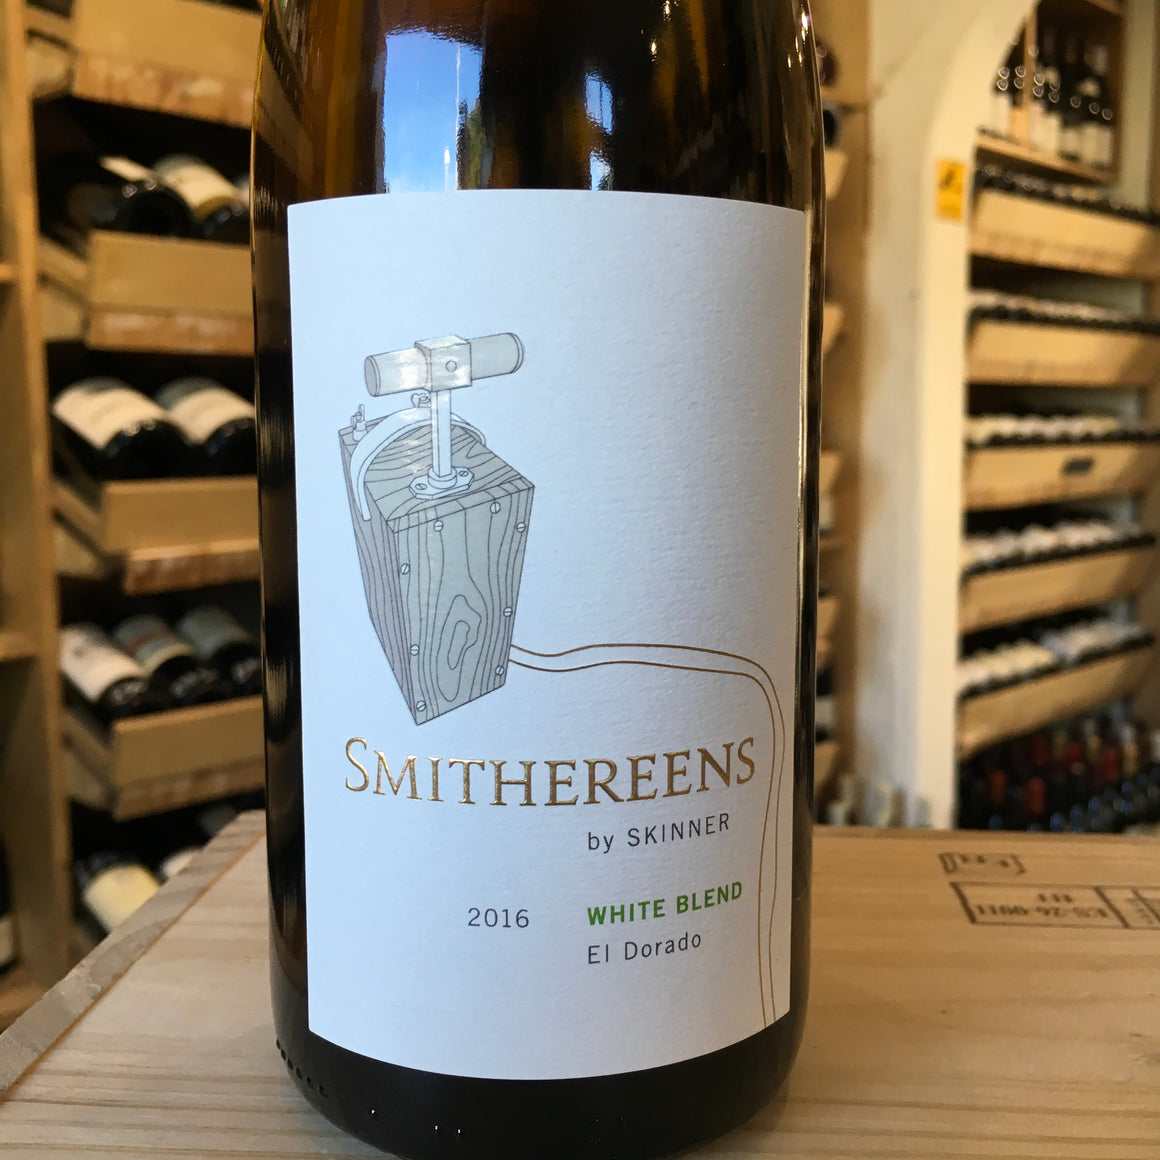 Smithereens White Blend El Dorado 2016 - Butlers Wine Cellar Brighton